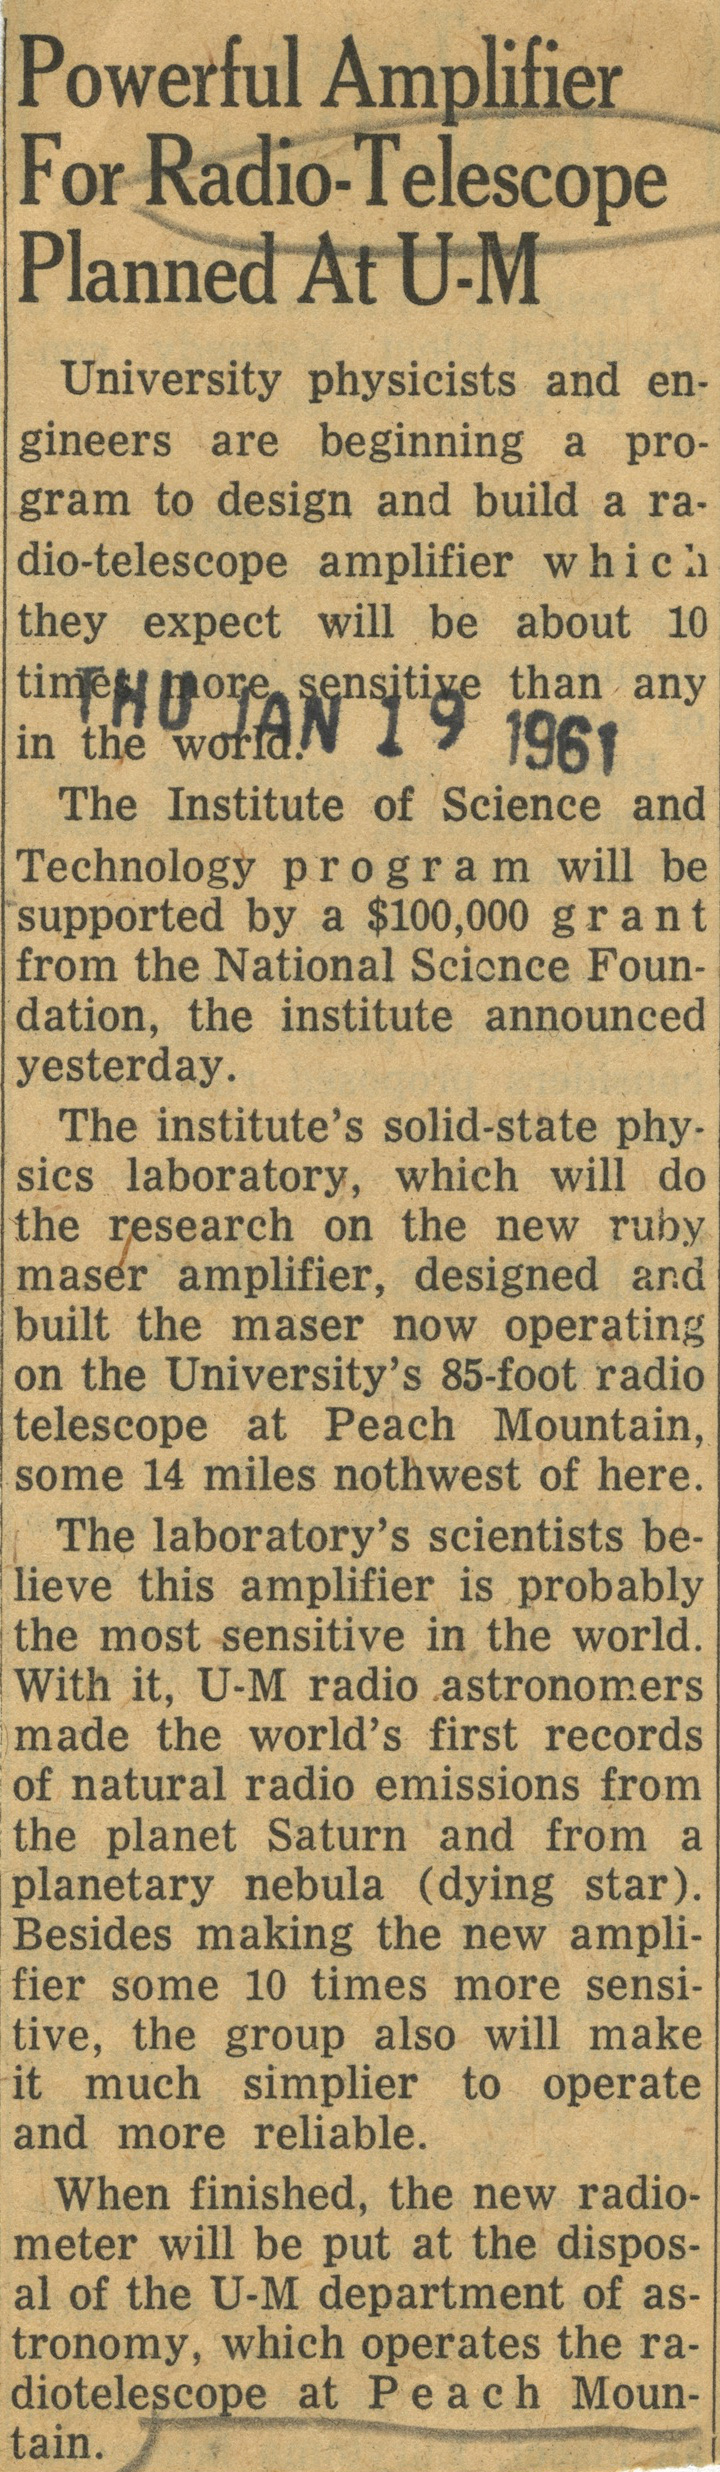 Powerful Amplifier For Radio-Telescope Planned At U-M image